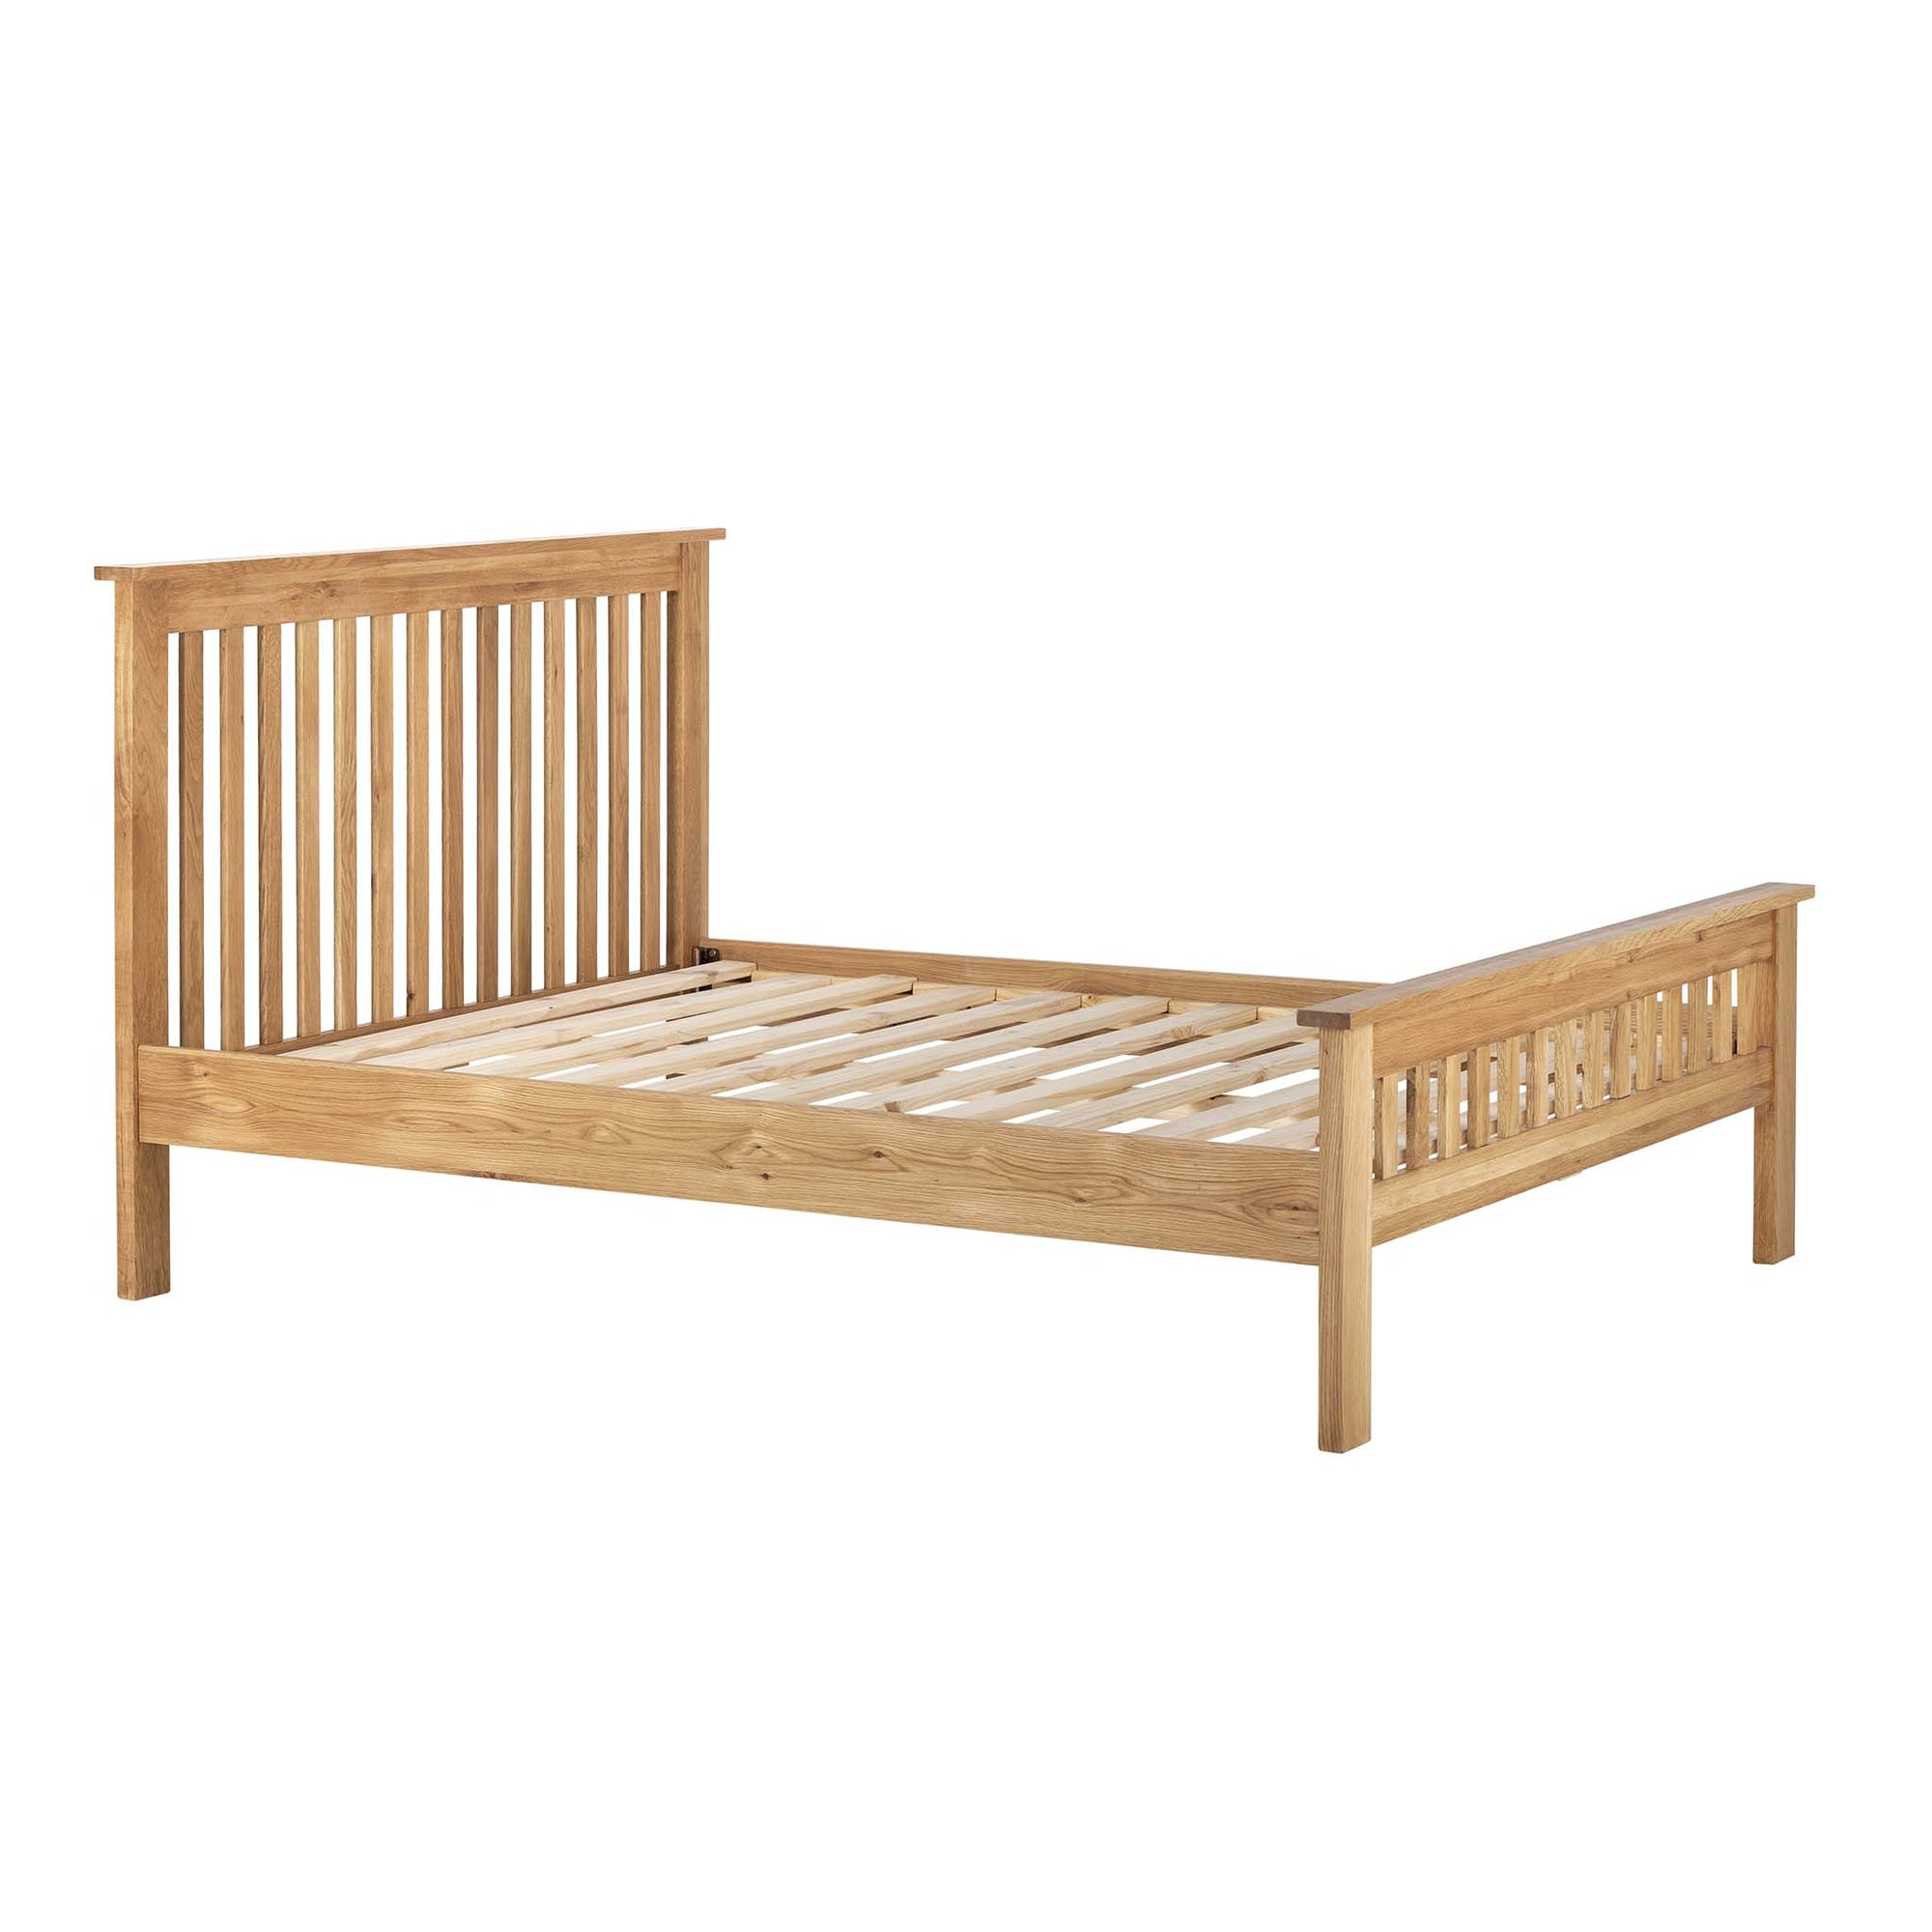 "Charlestown Oak 4ft 6"" Double Bed Frame by Roseland Furniture"